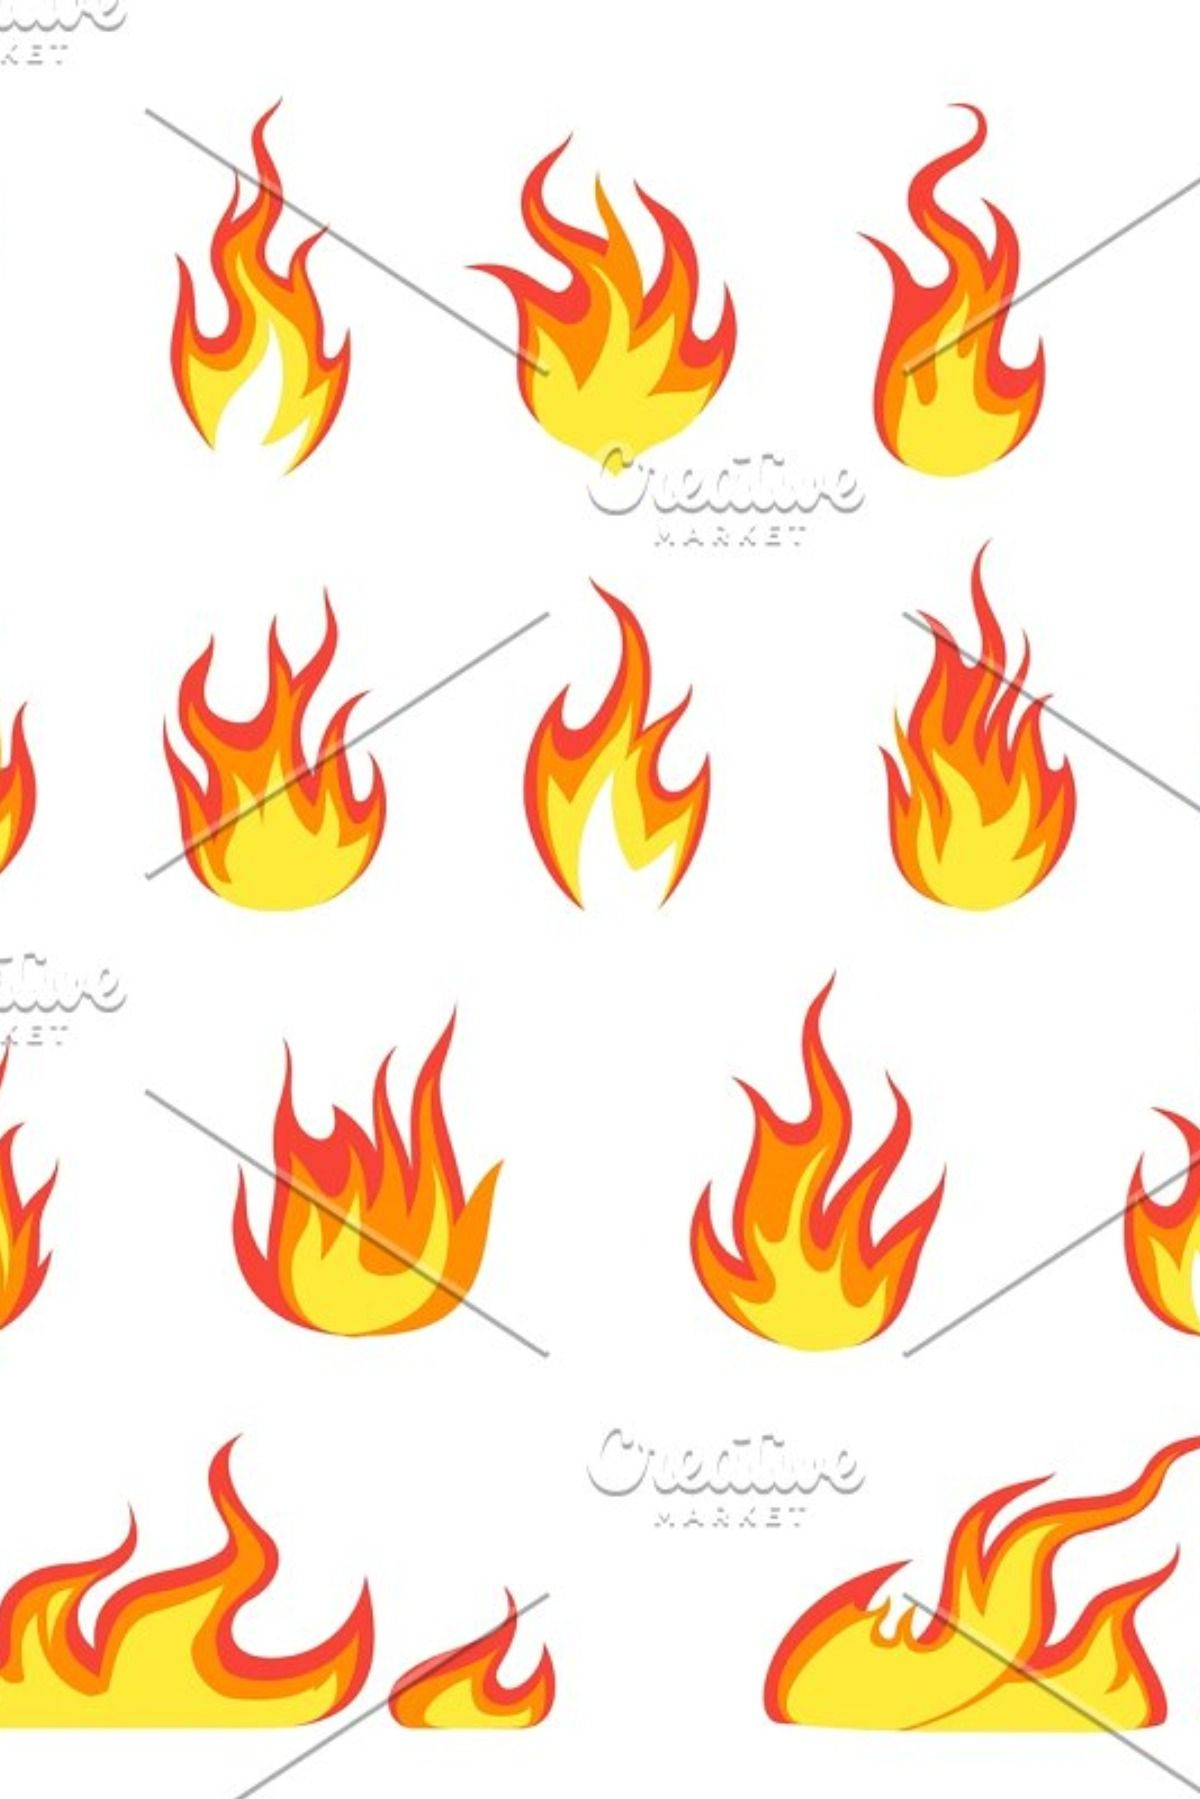 Cartoon Fire Flame Fires Image Hot Fire Image Fire Drawing Art Drawings Simple Learn how to draw fire cartoon pictures using these outlines or print just for coloring. cartoon fire flame fires image hot